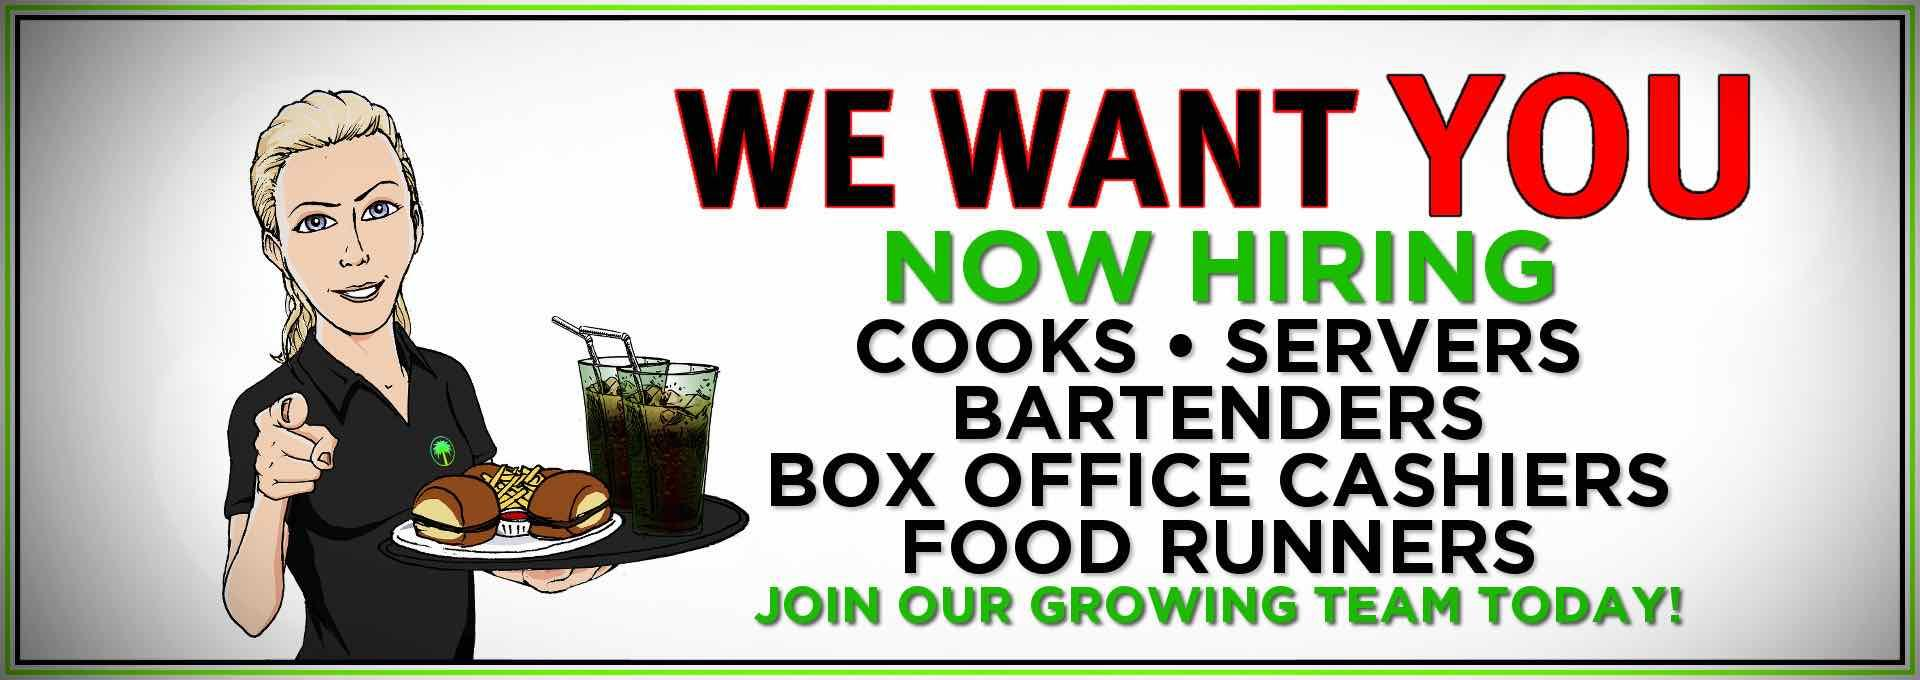 Jobs Careers Hollywood Palms Naperville Aurora Work Wages Saving Money Hired Now Hiring Apply Here Applications Servers Server Life Runners Cooks Box Office Cooks Spanish